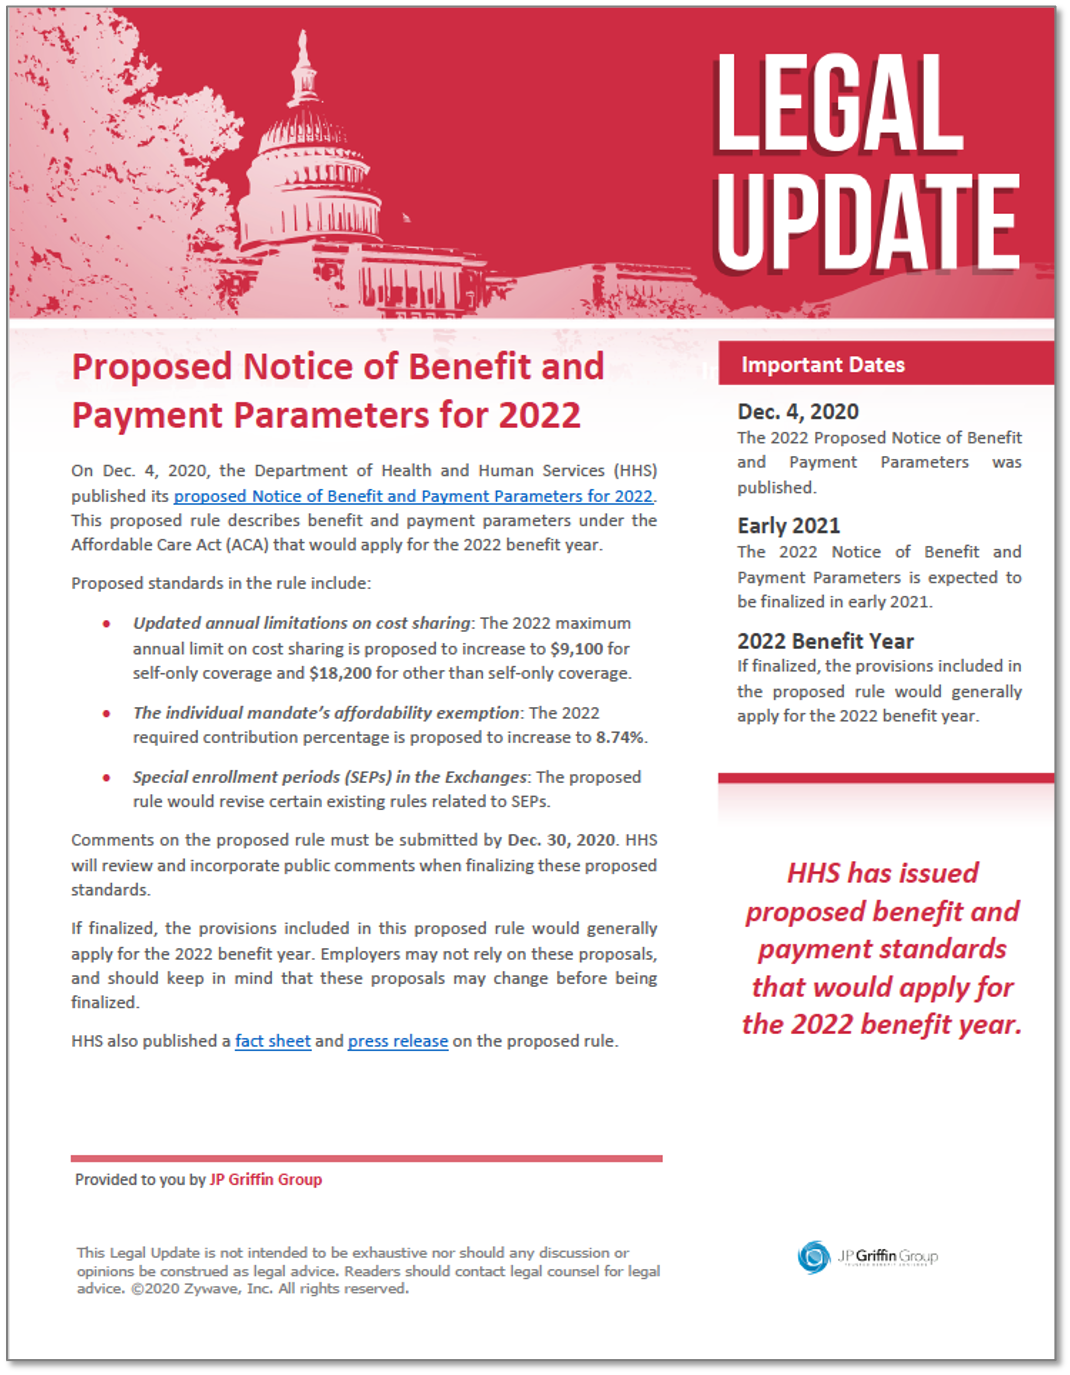 Proposed Notice of Benefit and Payment Parameters for 2022